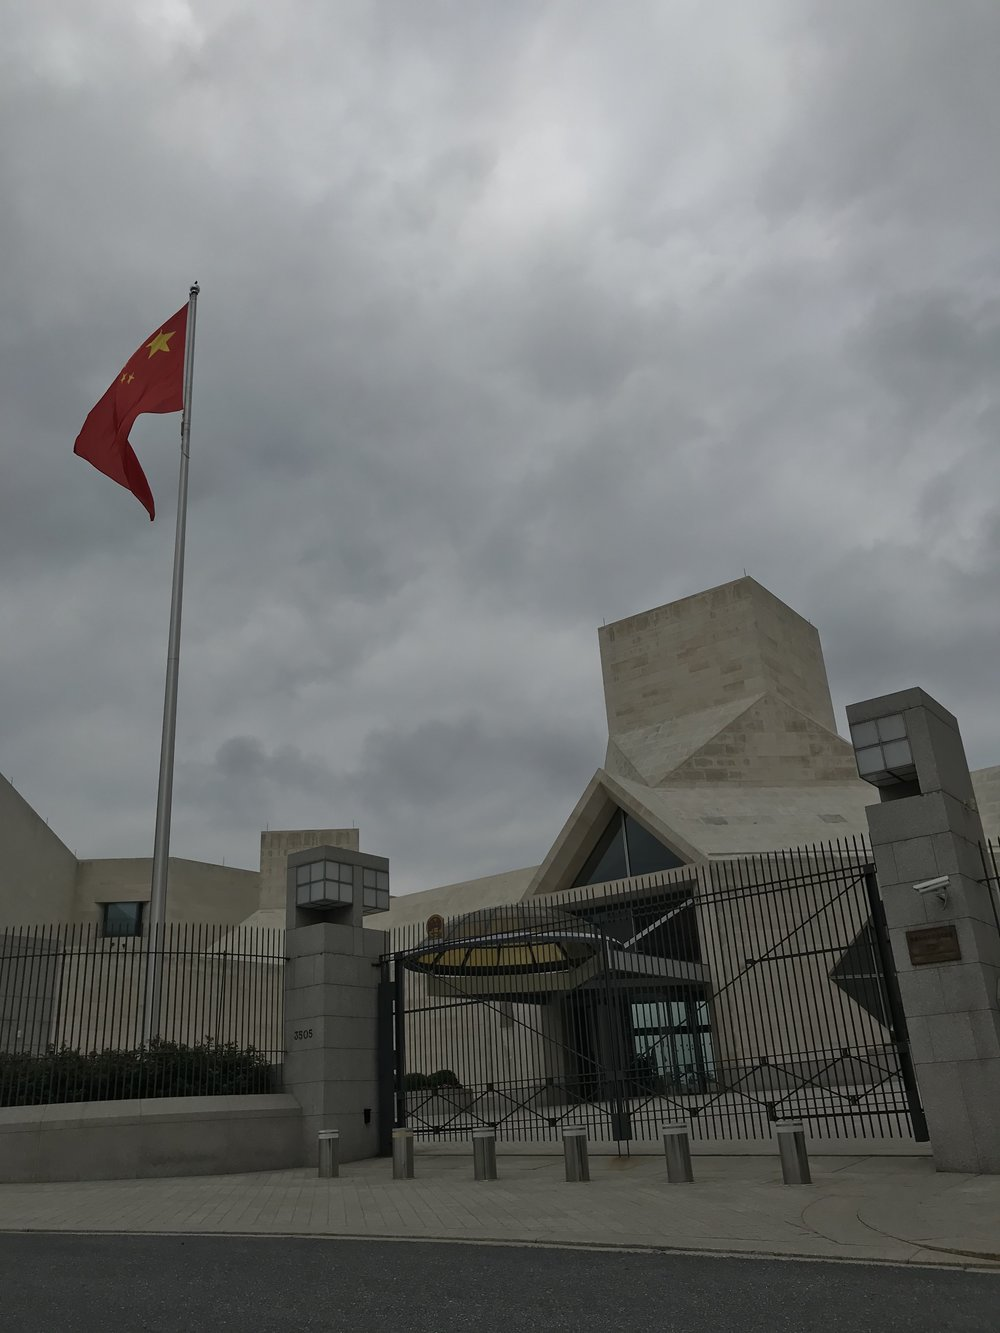 The Embassy of China.